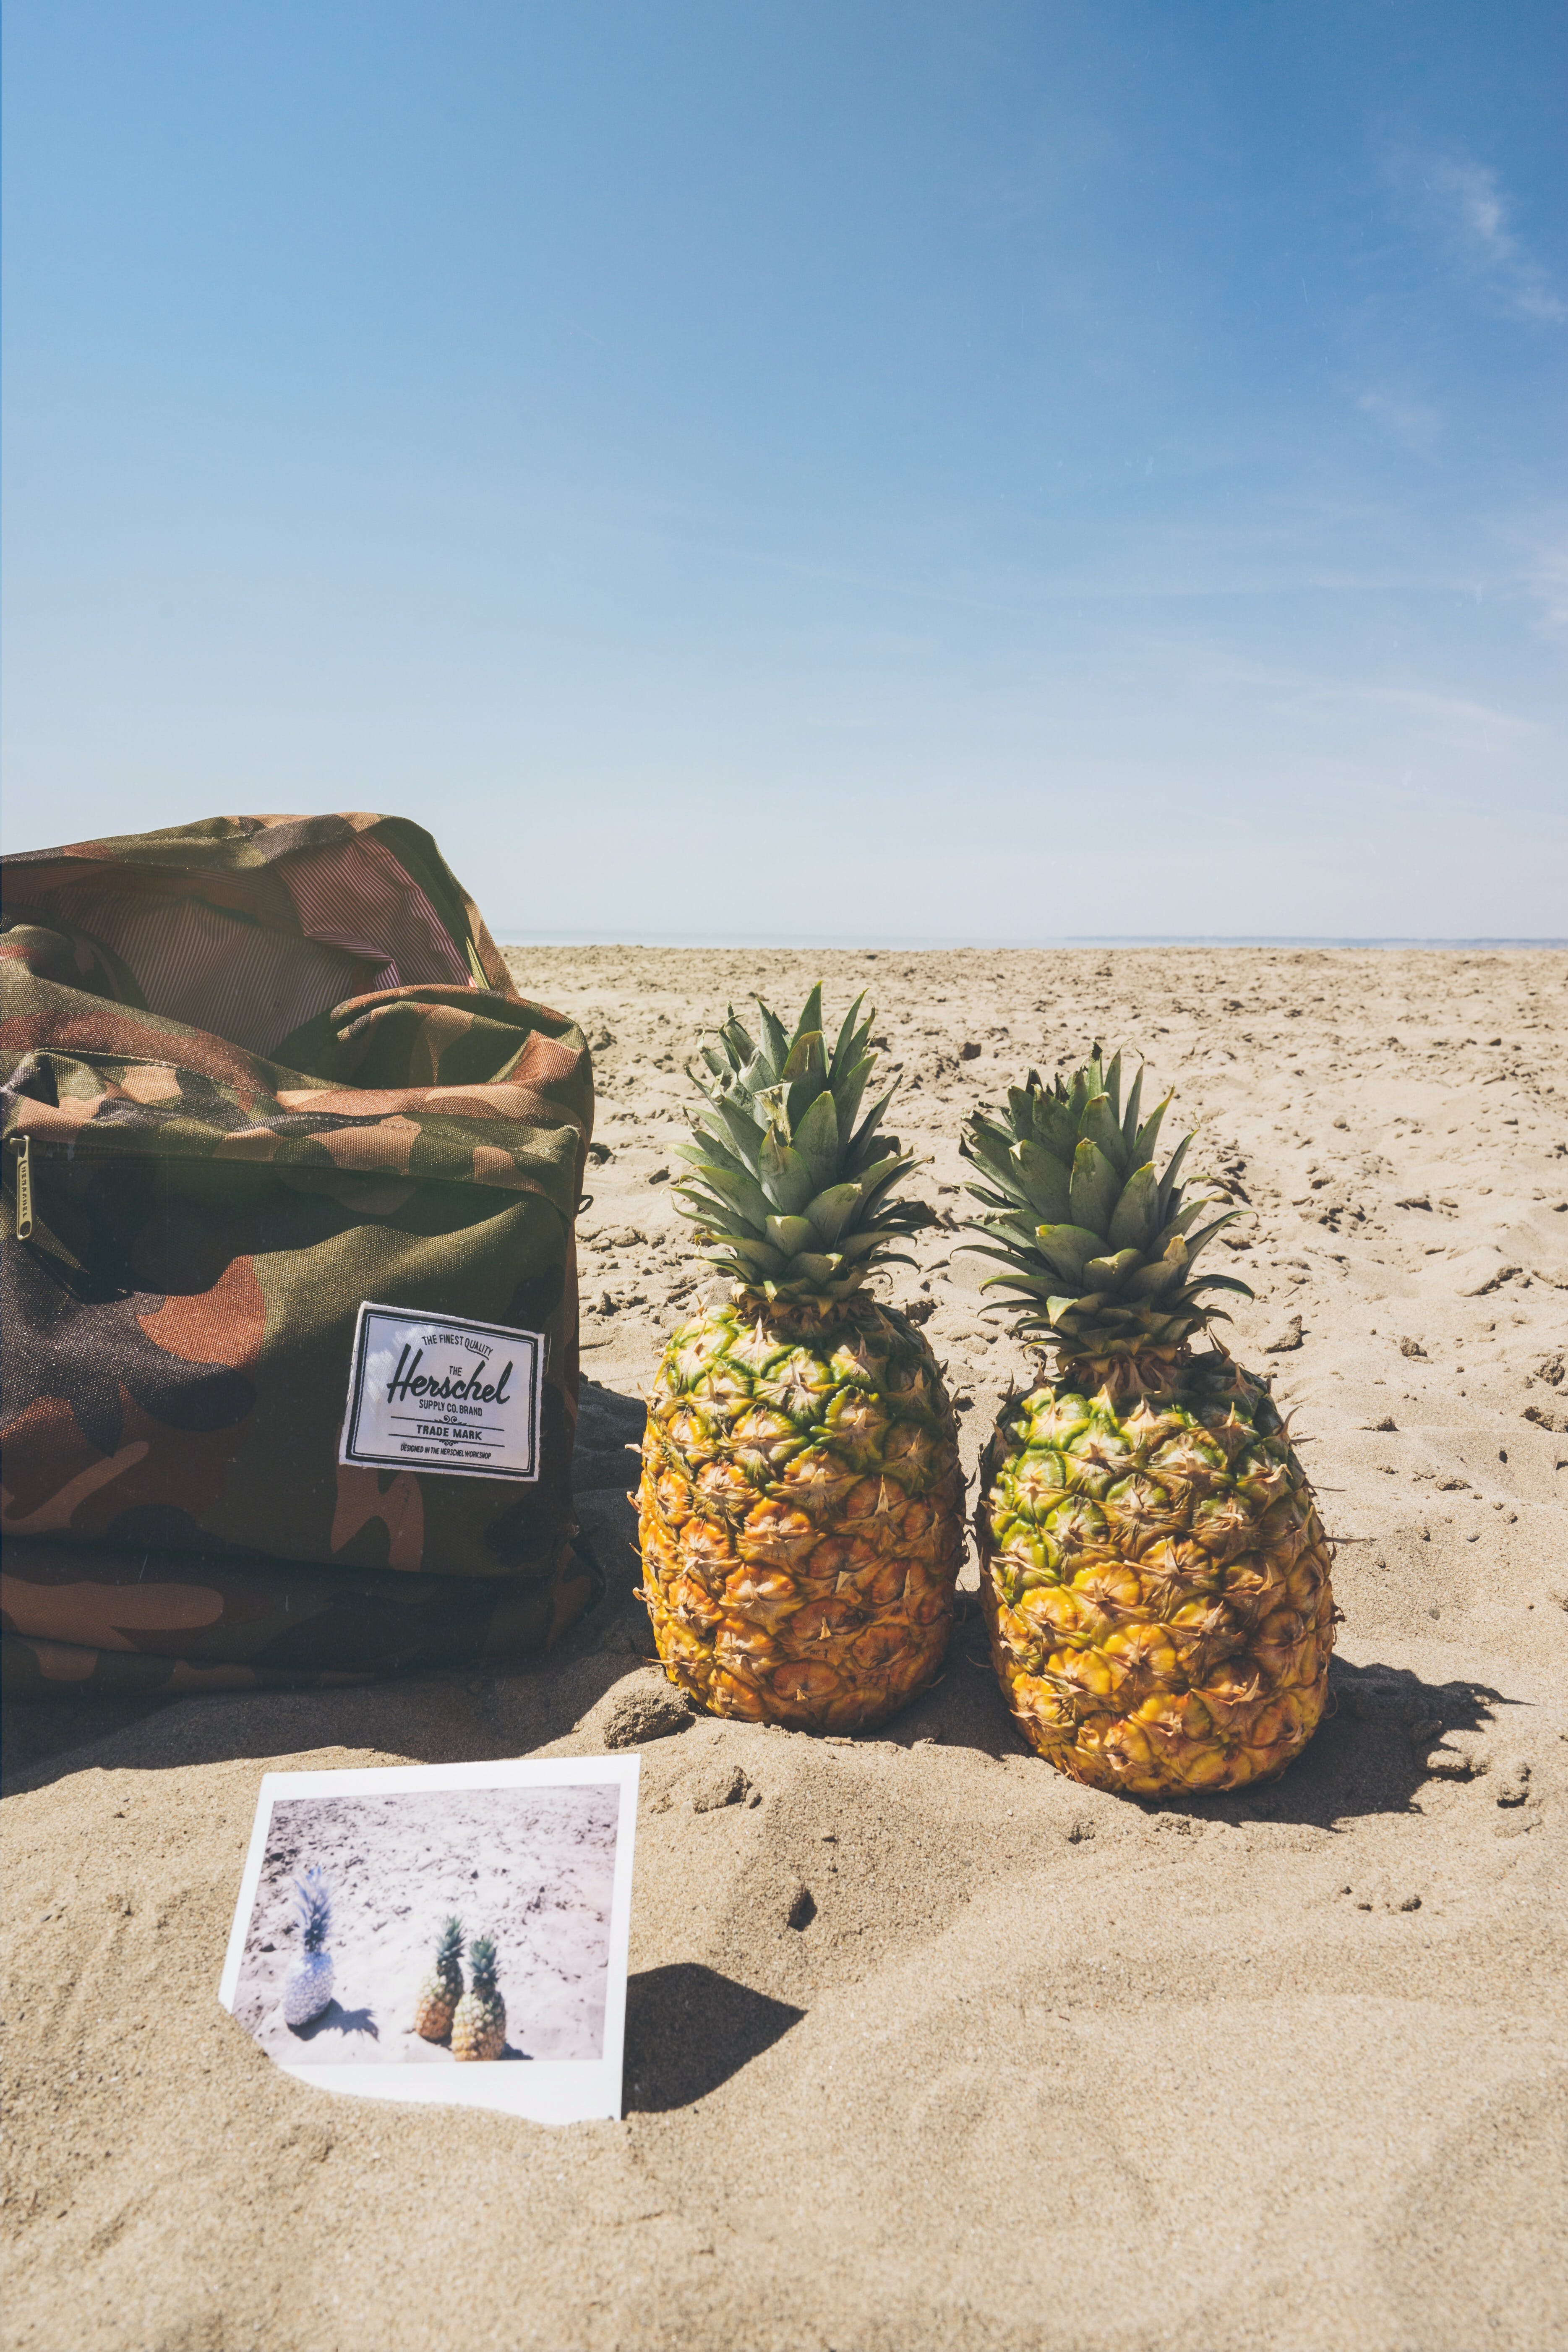 Green, Black, and Brown Camouflage Herschel Backpack Beside Two Pineapple Fruits on Brown Field